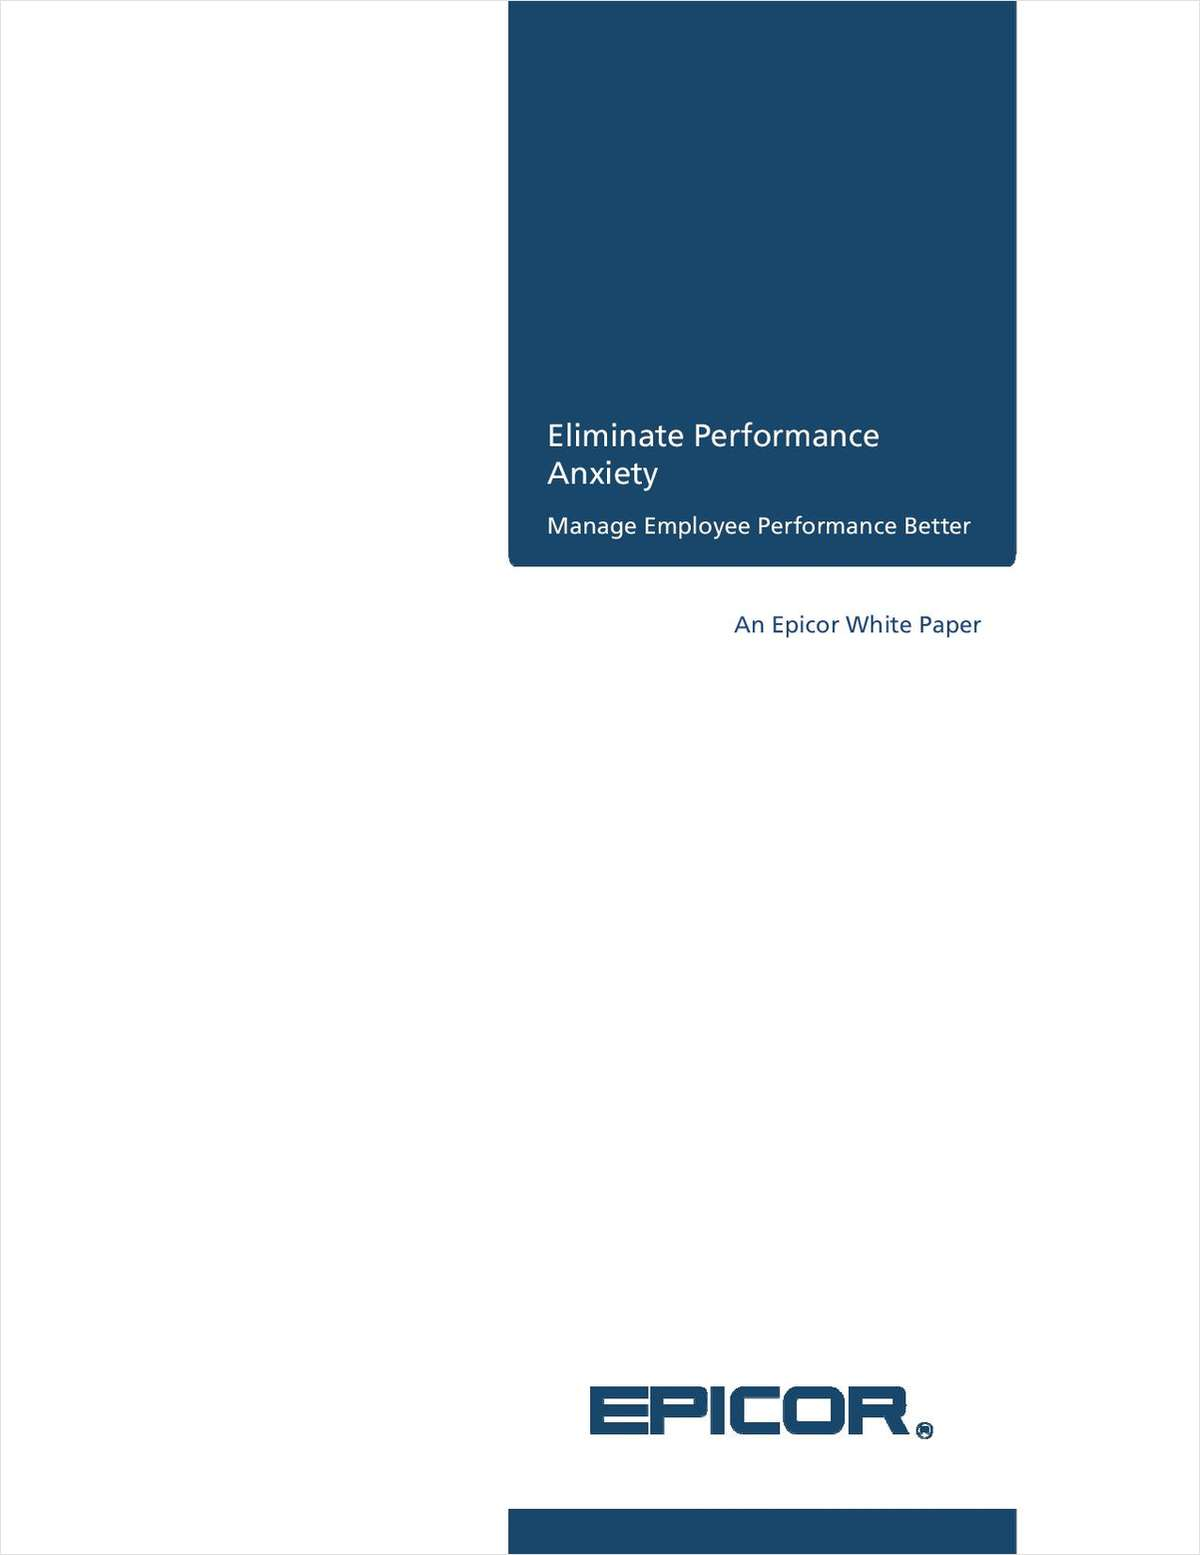 Eliminate Performance Anxiety: Manage Employee Performance Better